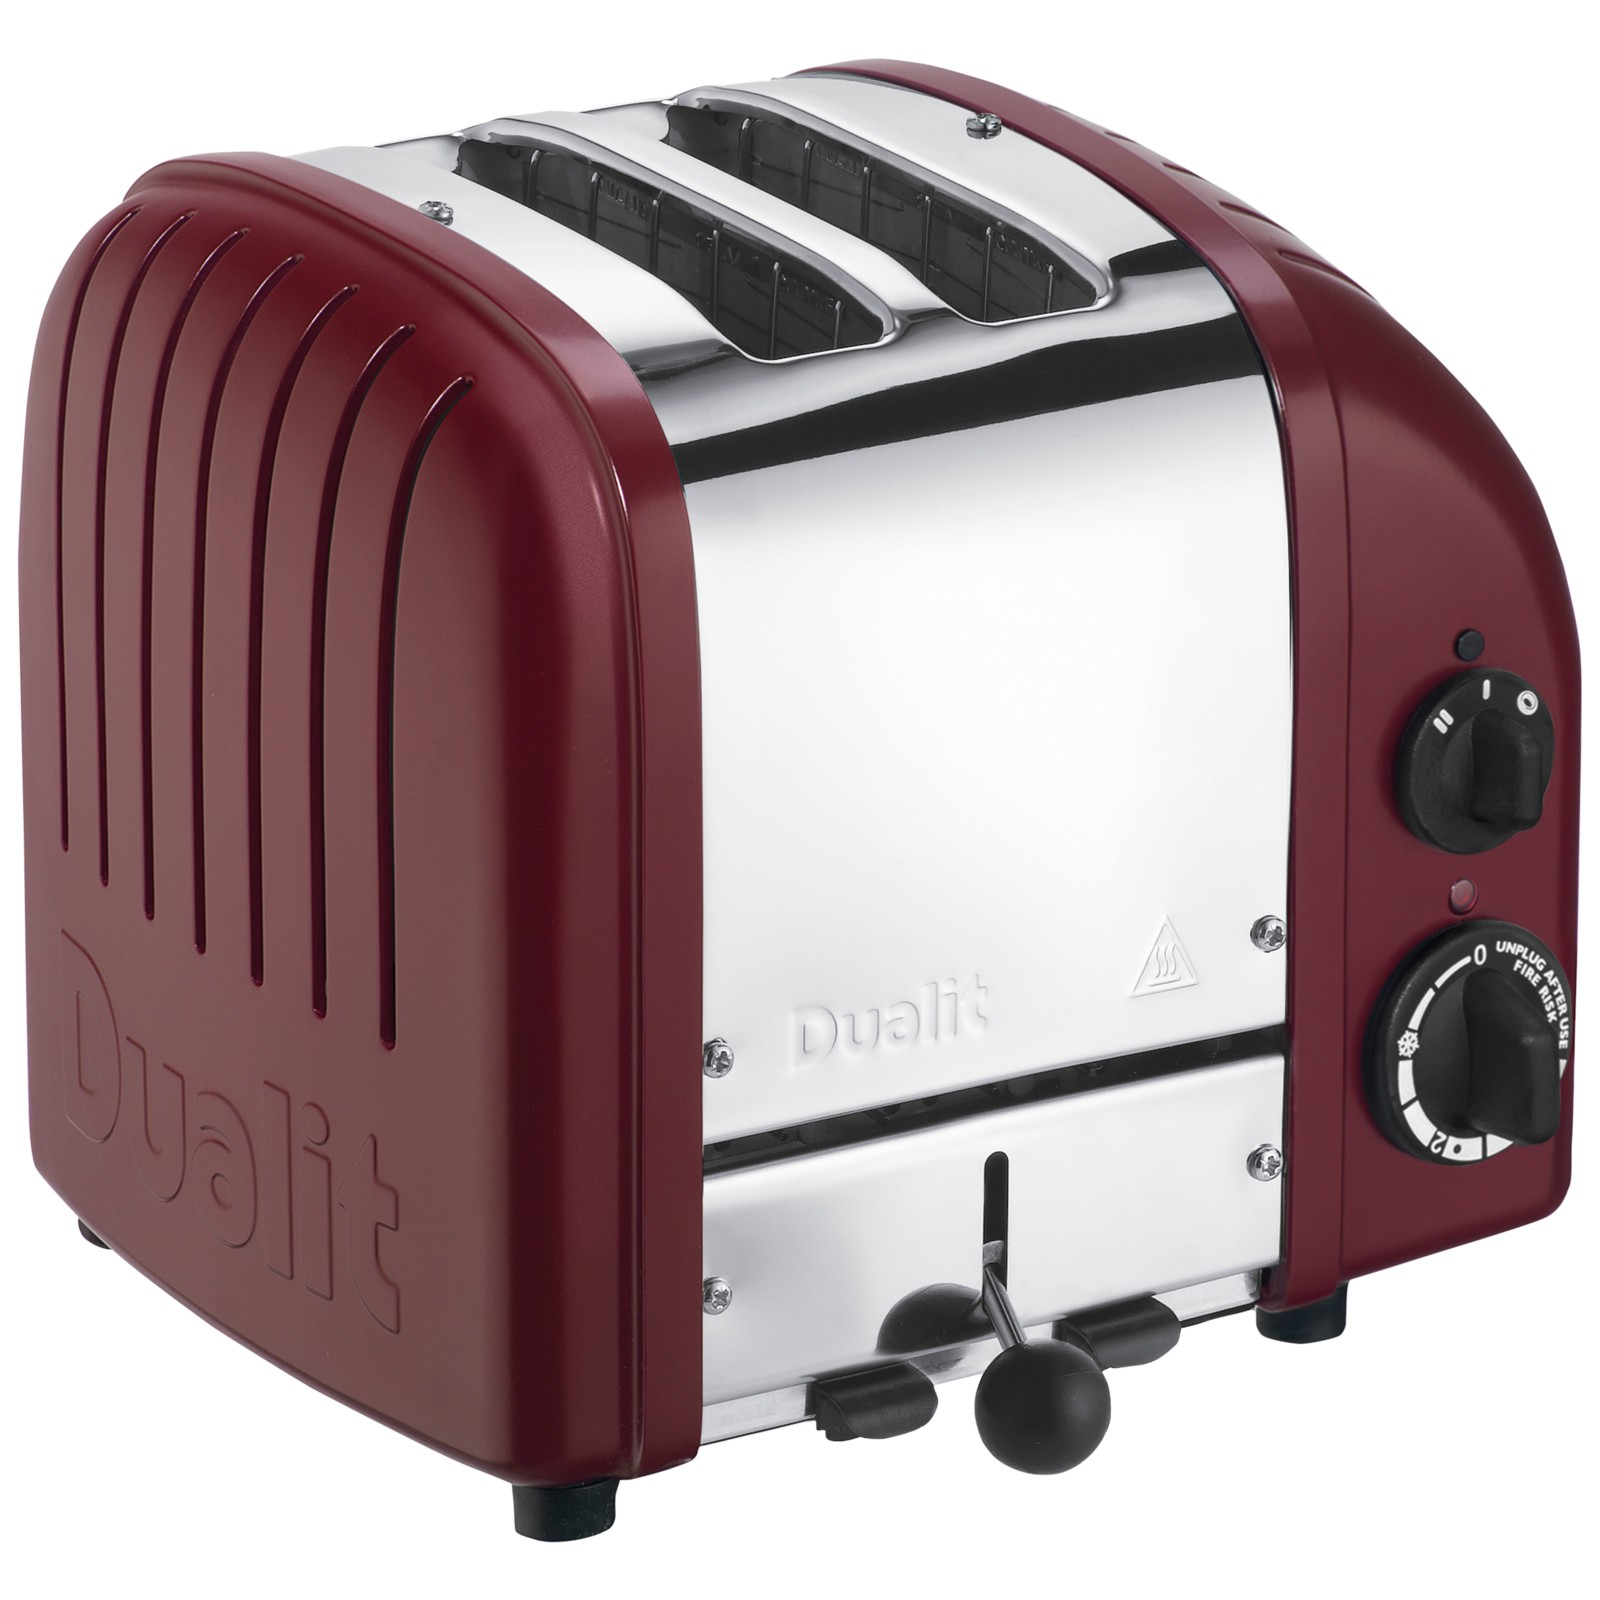 Dualit Made to Order Classic 2-Slice Toaster Stainless Steel/Wine Red Matt